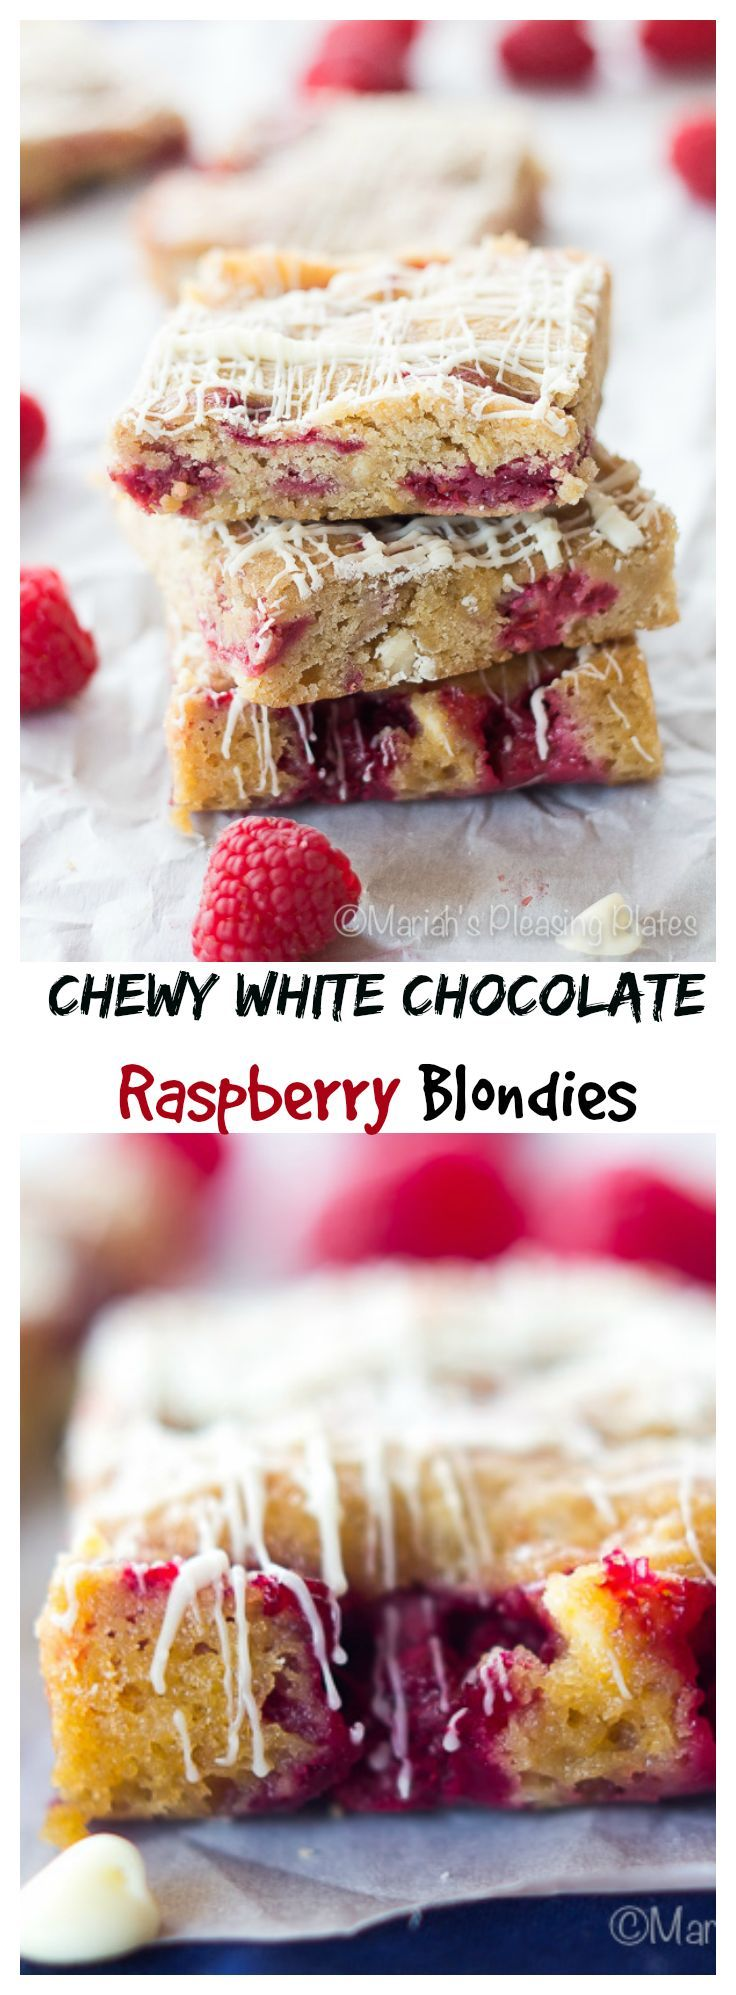 Decadence at its finest, these White Chocolate Raspberry Blondies are sure to impress anyone. The perfect chewy texture, combined with juicy, tart raspberries make these treats unforgettable.